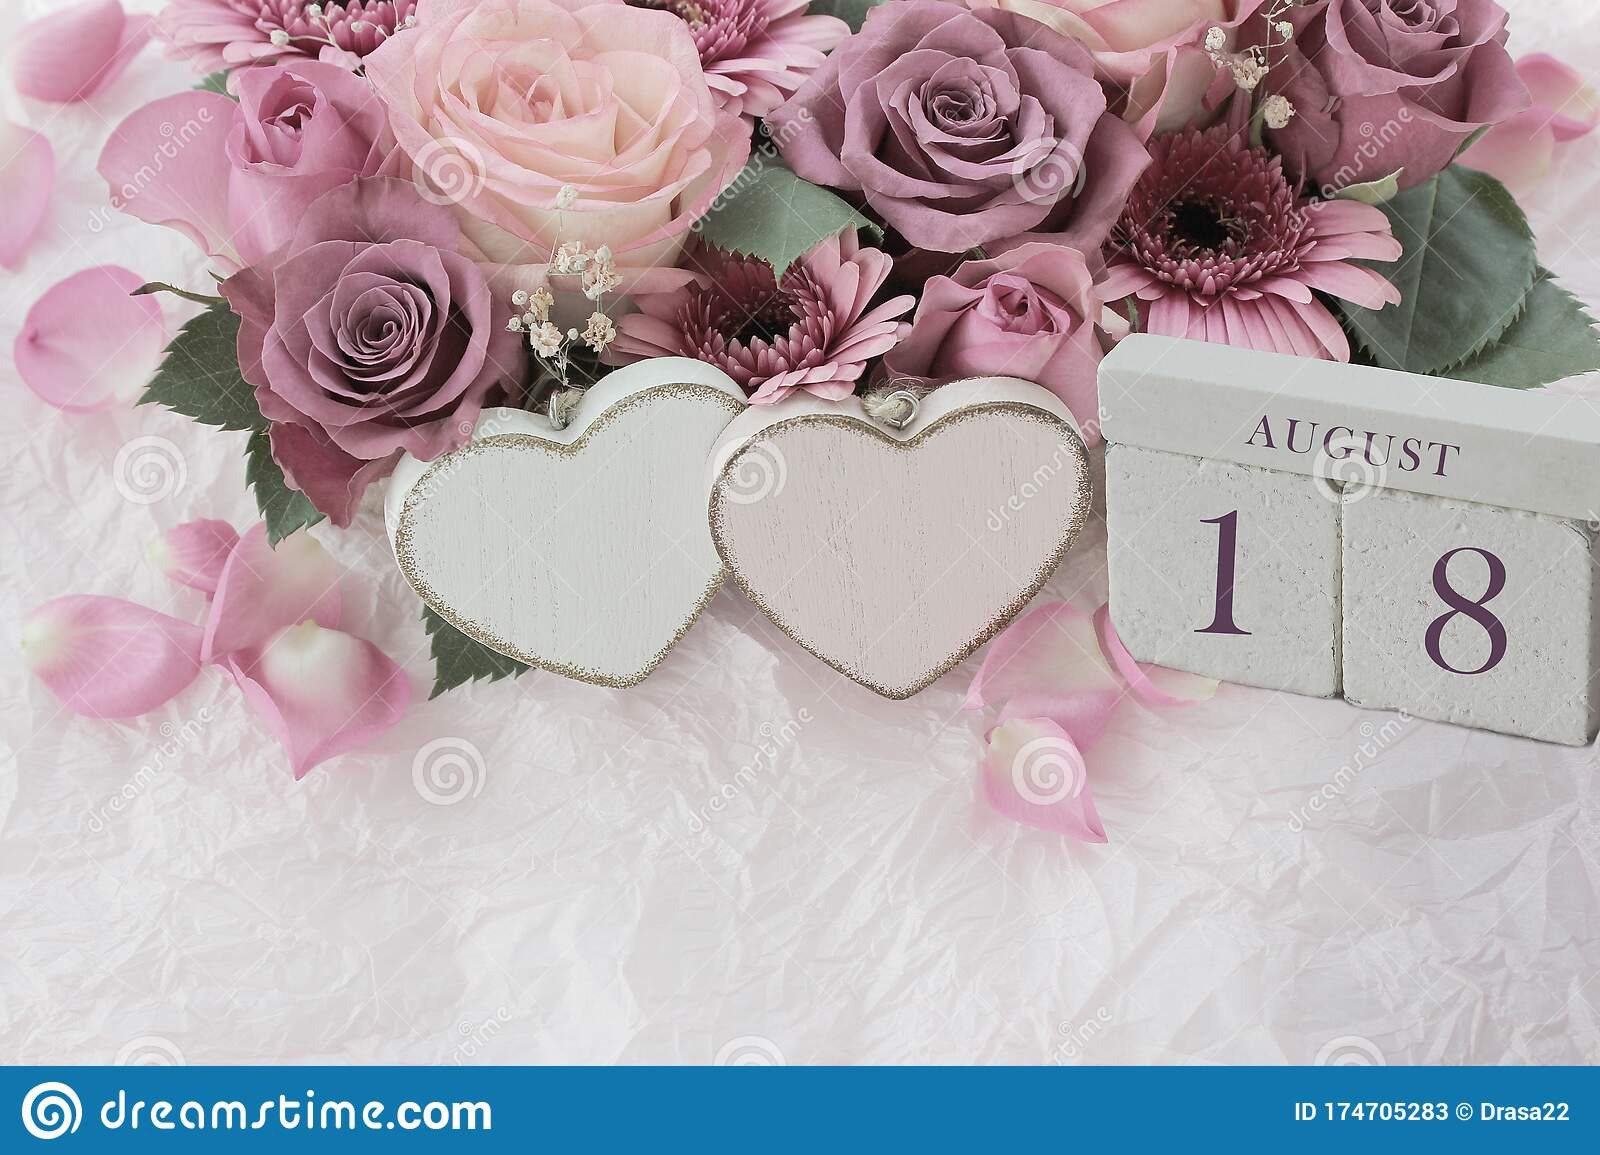 August 18th Wood Cube Calendar With Date Of Month And Day Pink Flowers Bouquet And Two Hearts Stock Image Image Of Deadline Birthday 174705283